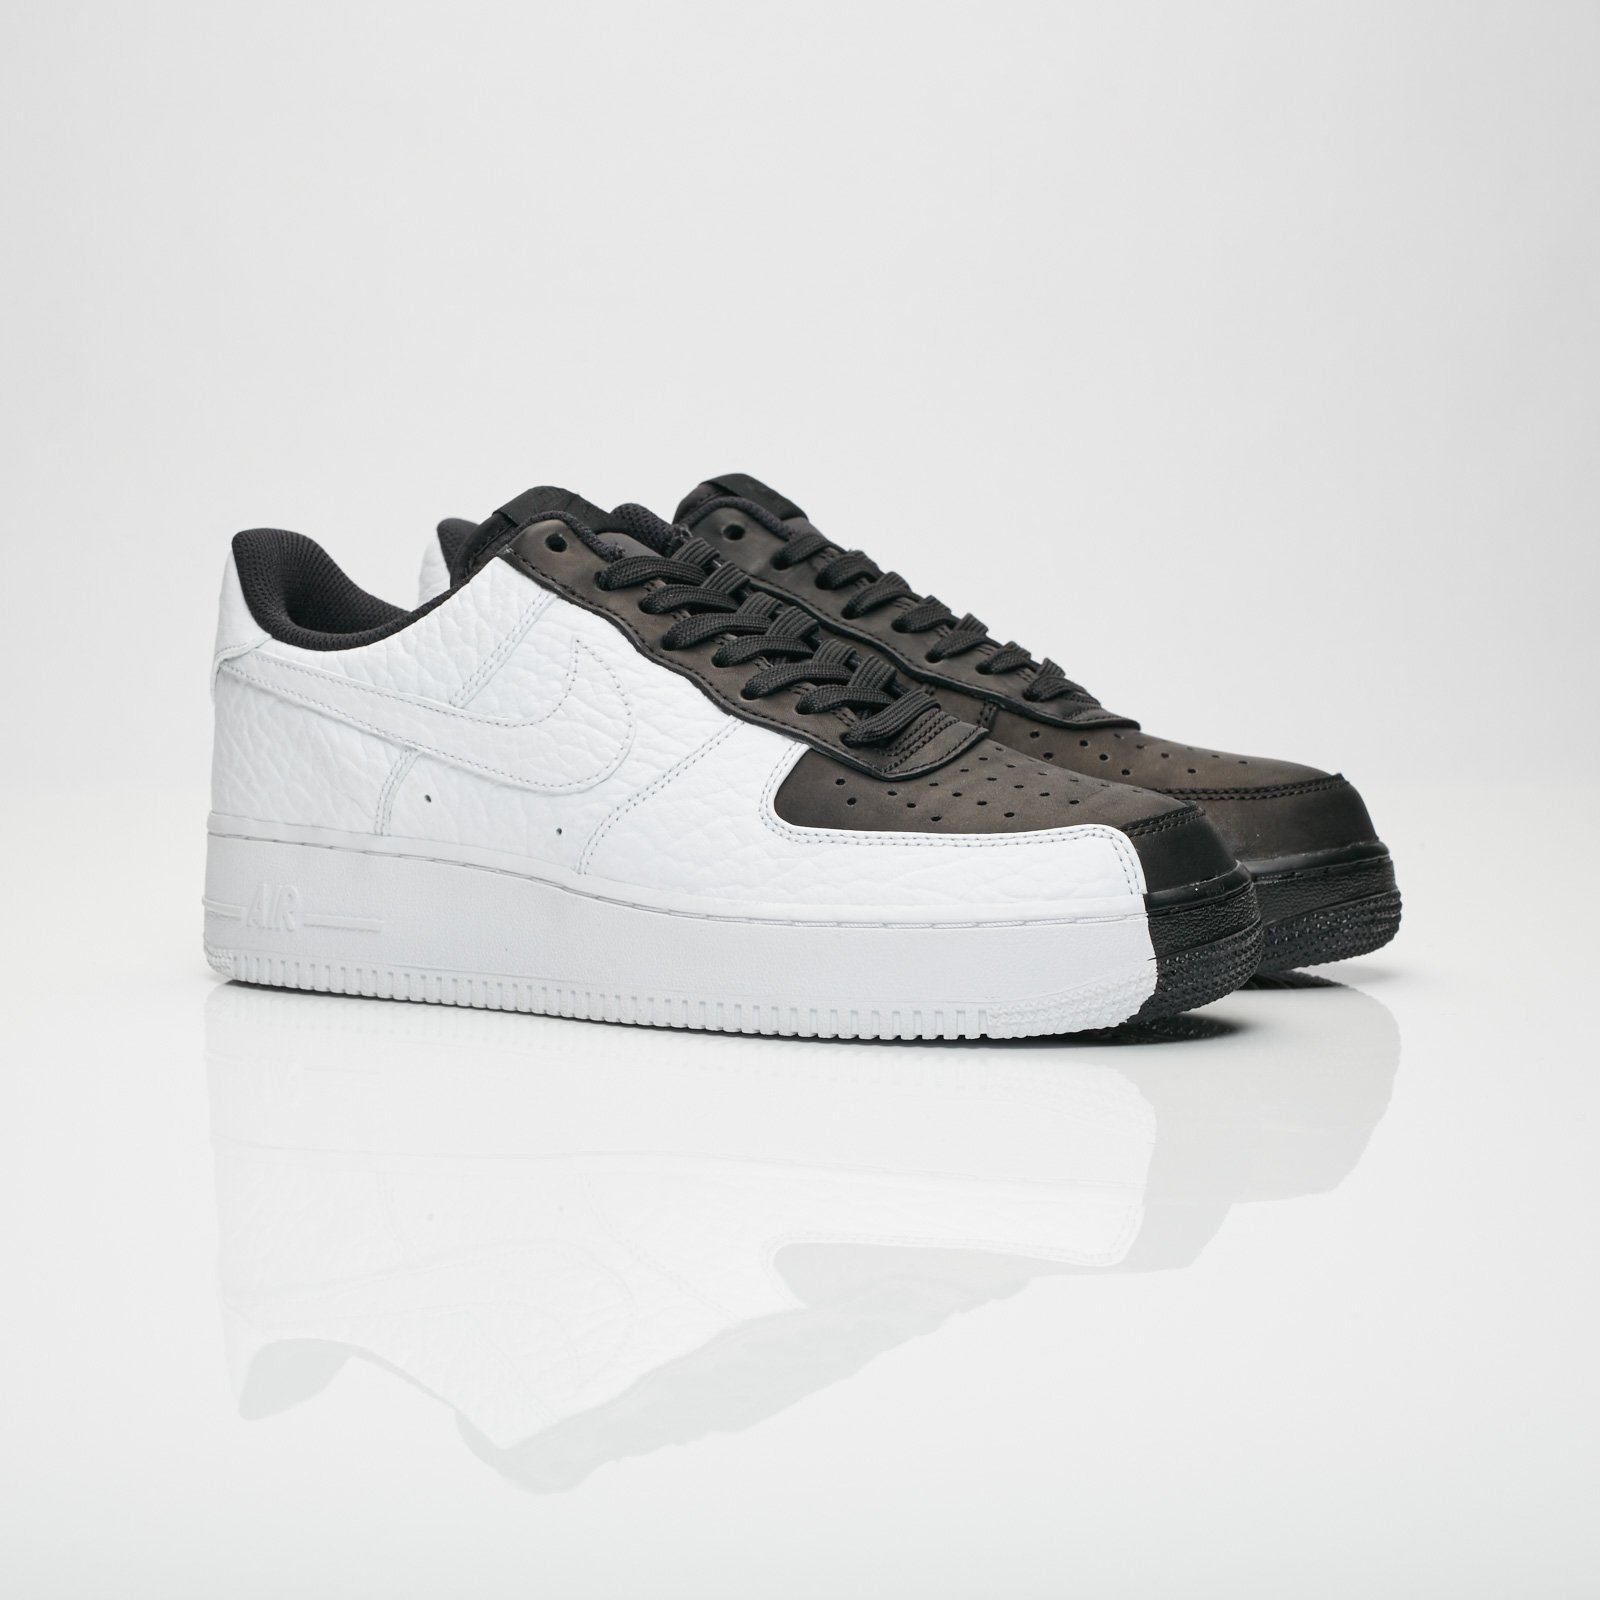 size 40 35e03 c45c9 Nike Sportswear Air Force 1 07 PRM